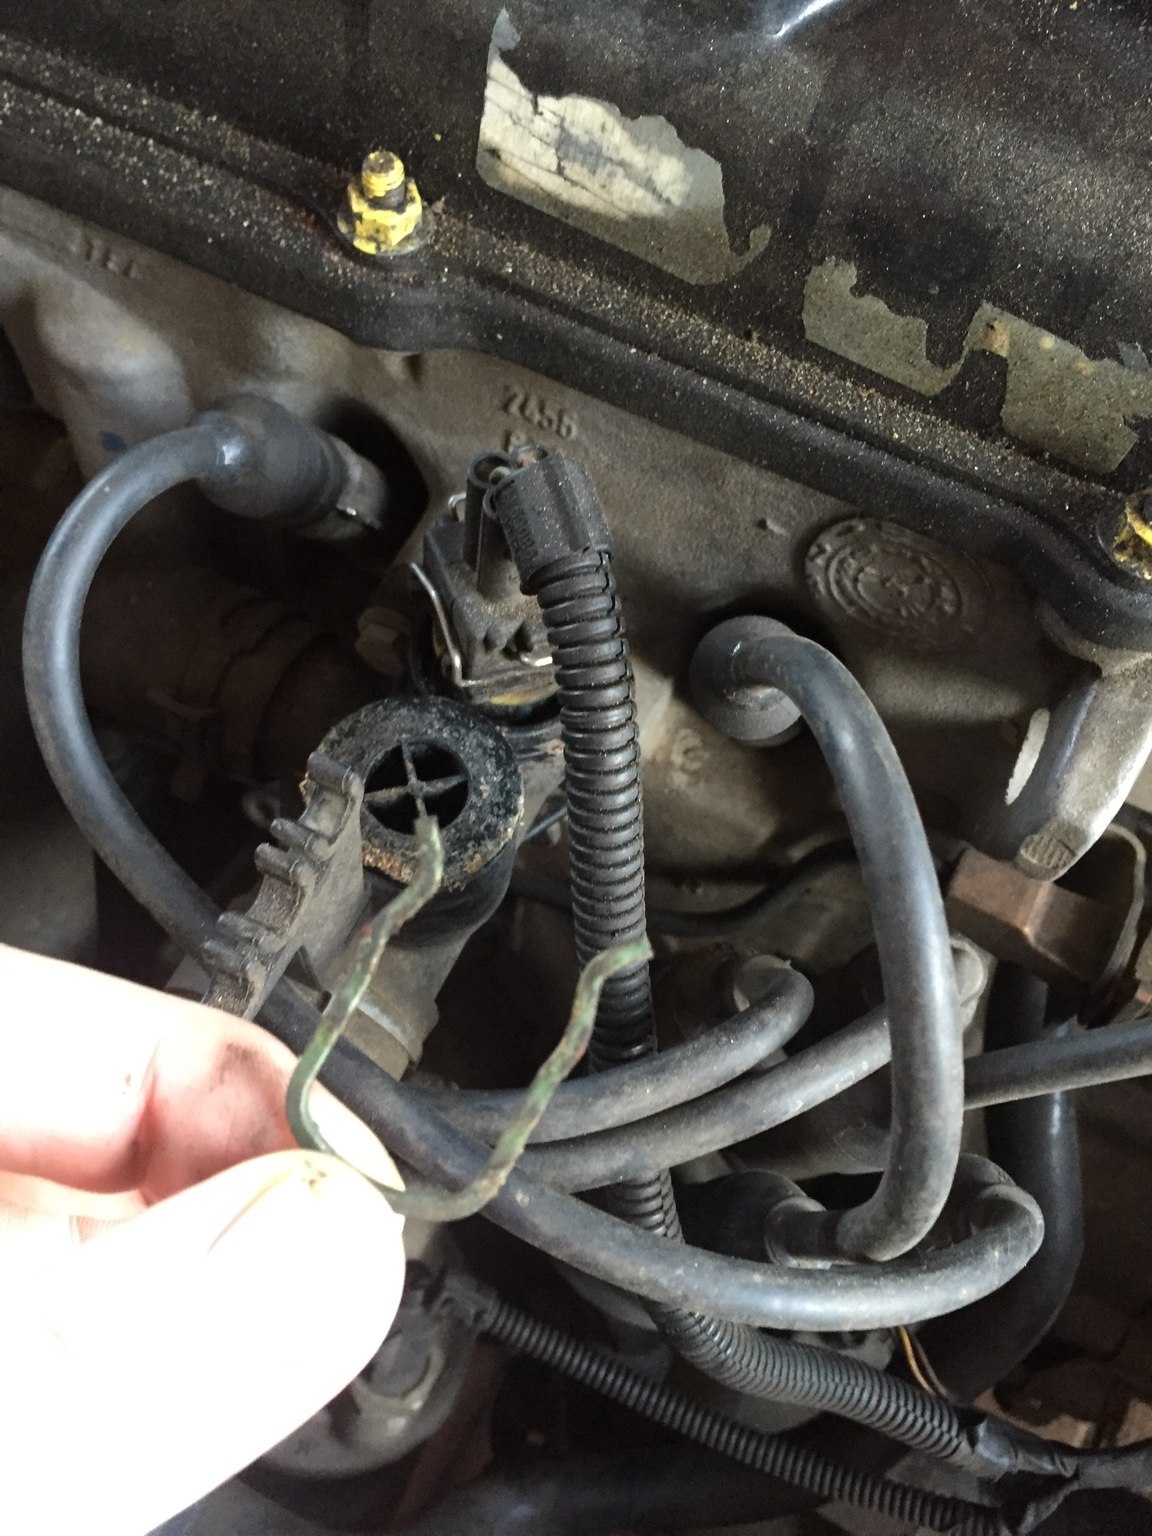 club car wire diagram 2004 nissan maxima wiring citi golf water temp sensor housing - the volkswagen of south africa